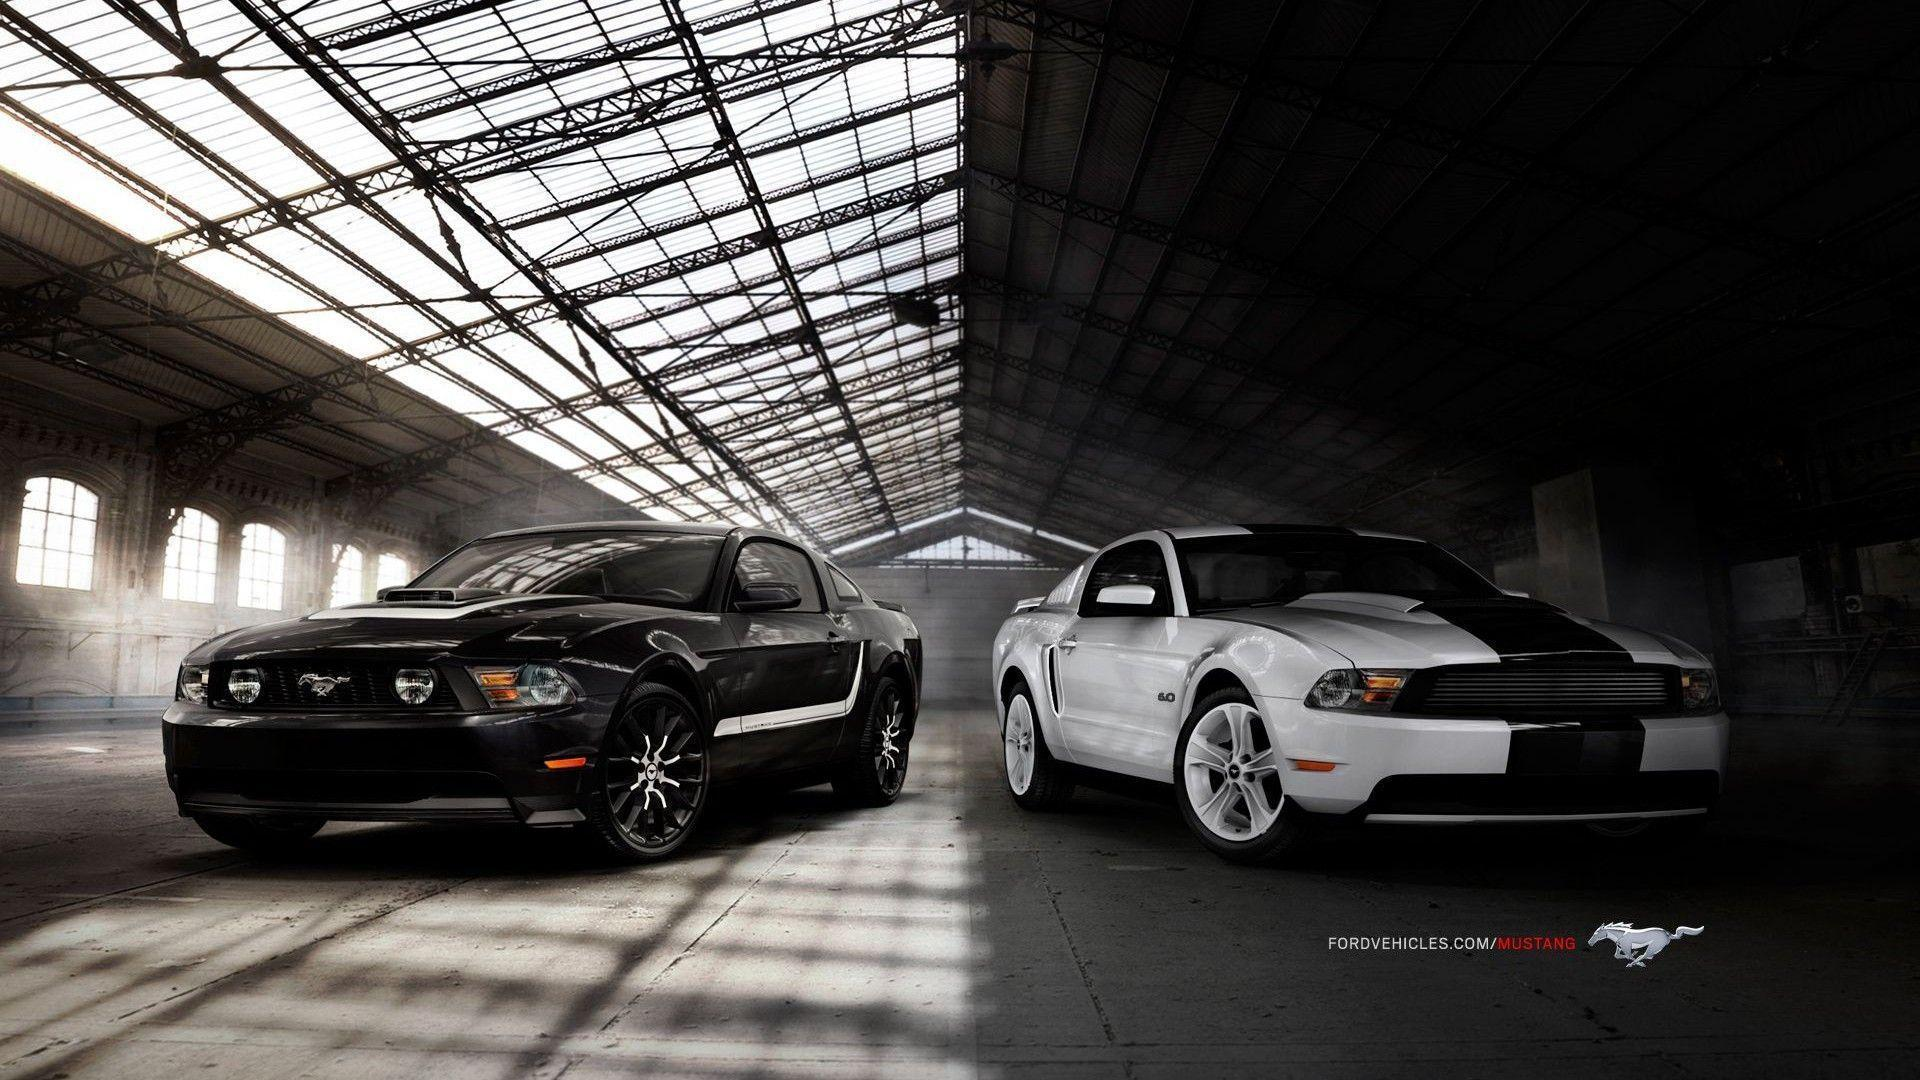 ford mustang gt 2014 black and white wallpaper 7950 wallpaper - Mustang 2014 Black Wallpaper